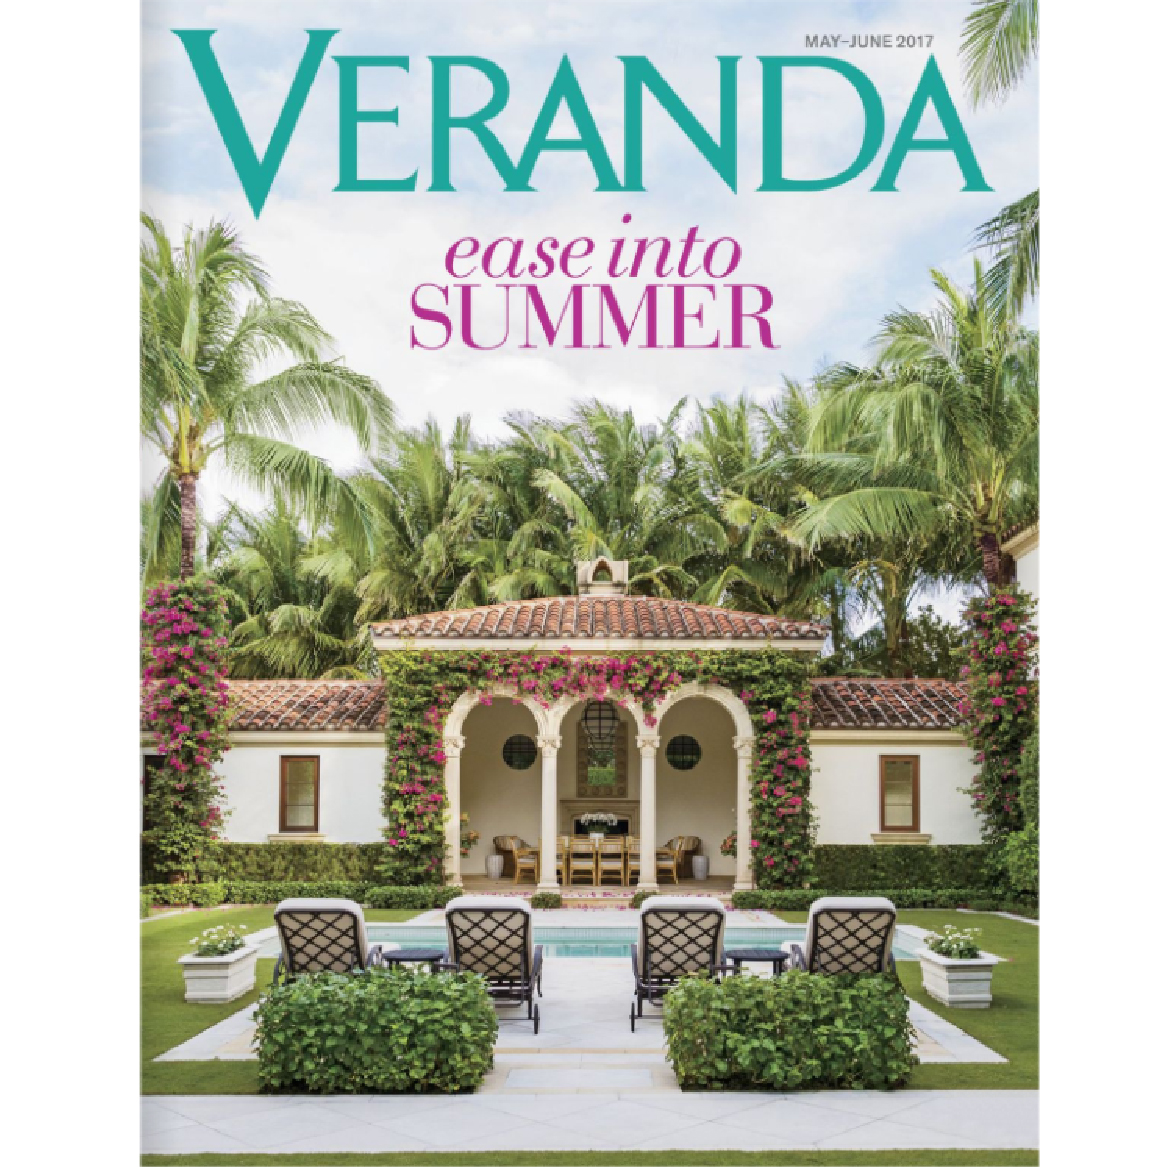 Veranda May-June 2017